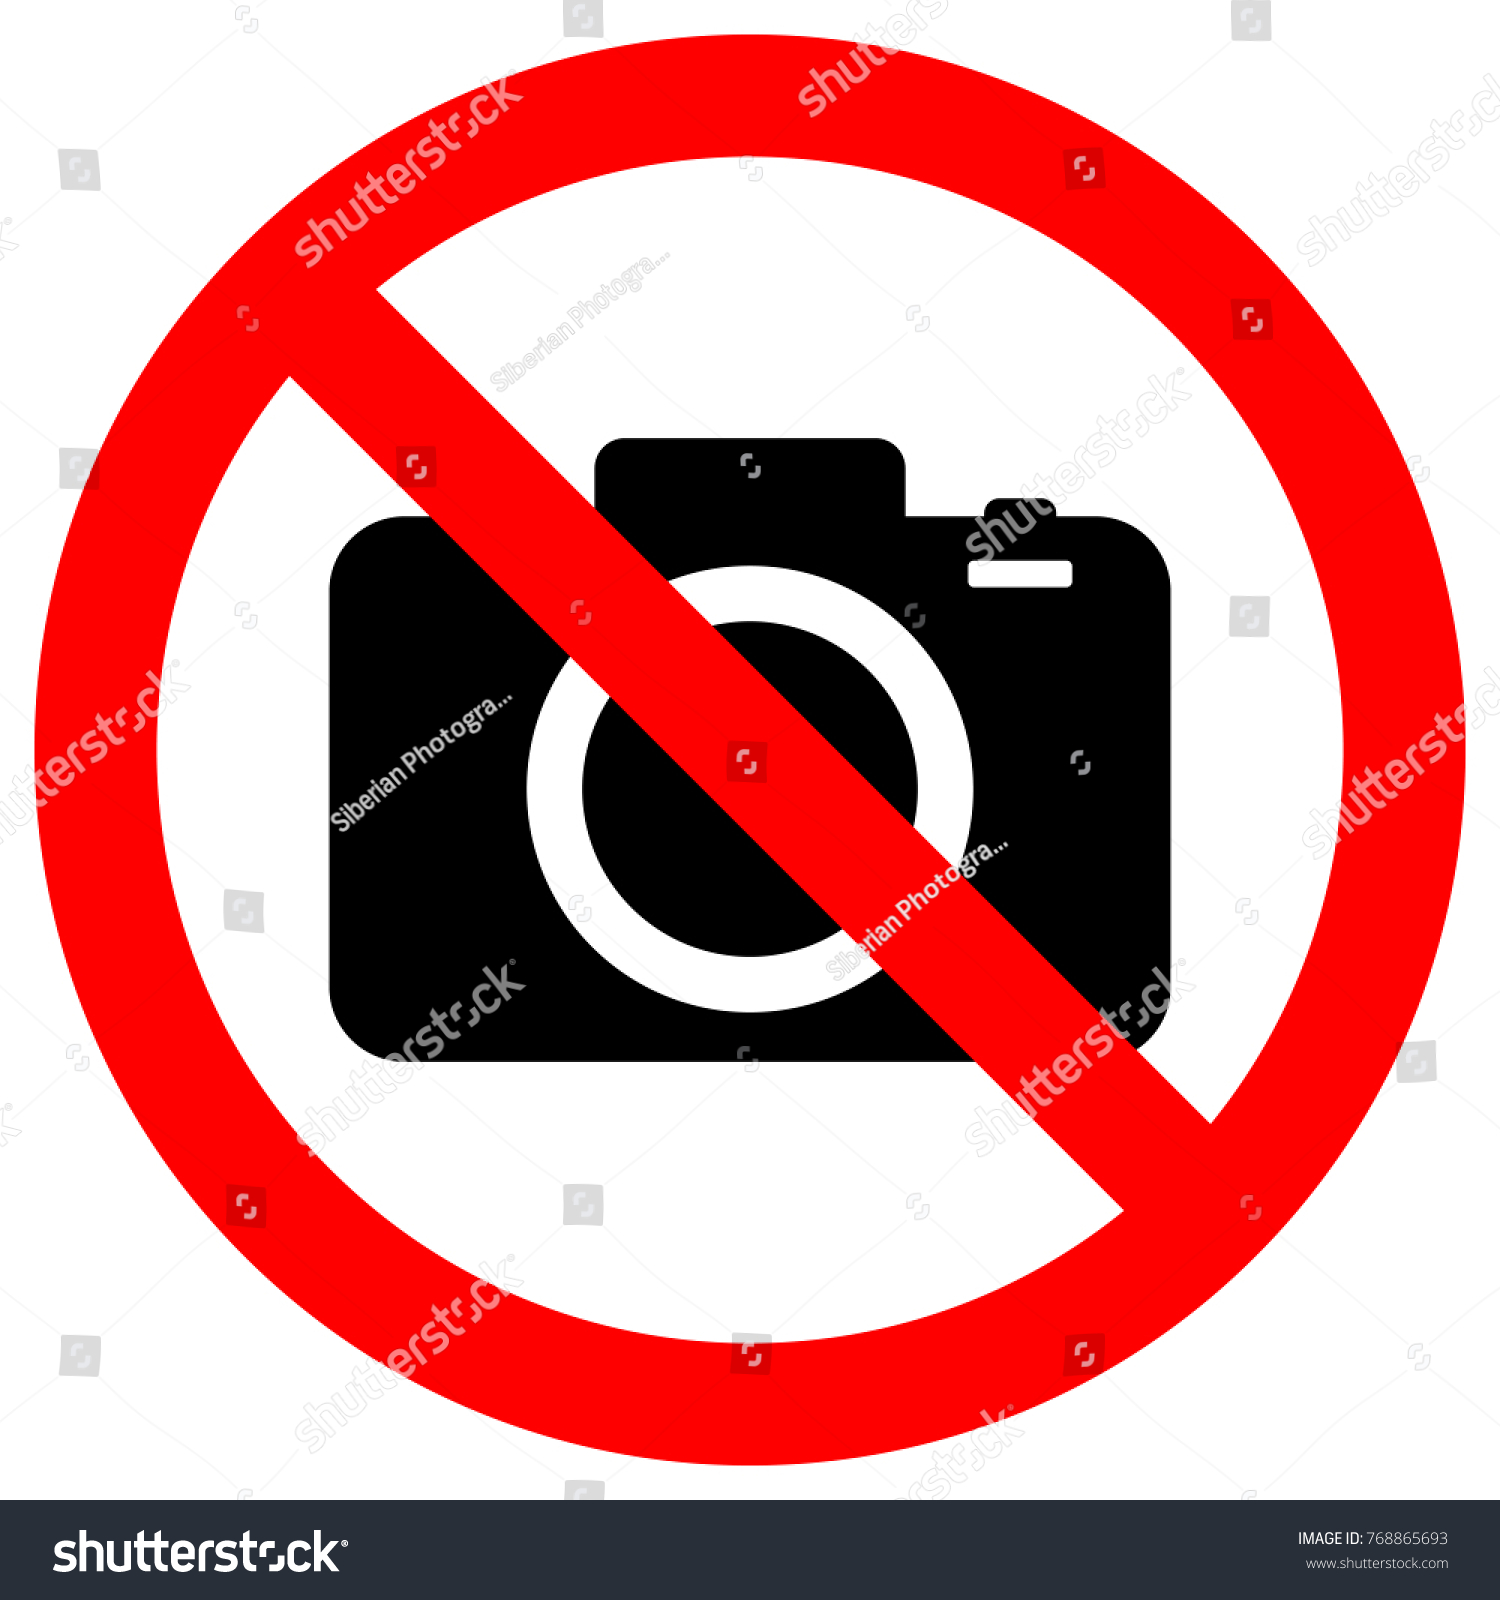 No Cameras Allowed Sign Flat Icon Stock Vector 768865693 ...